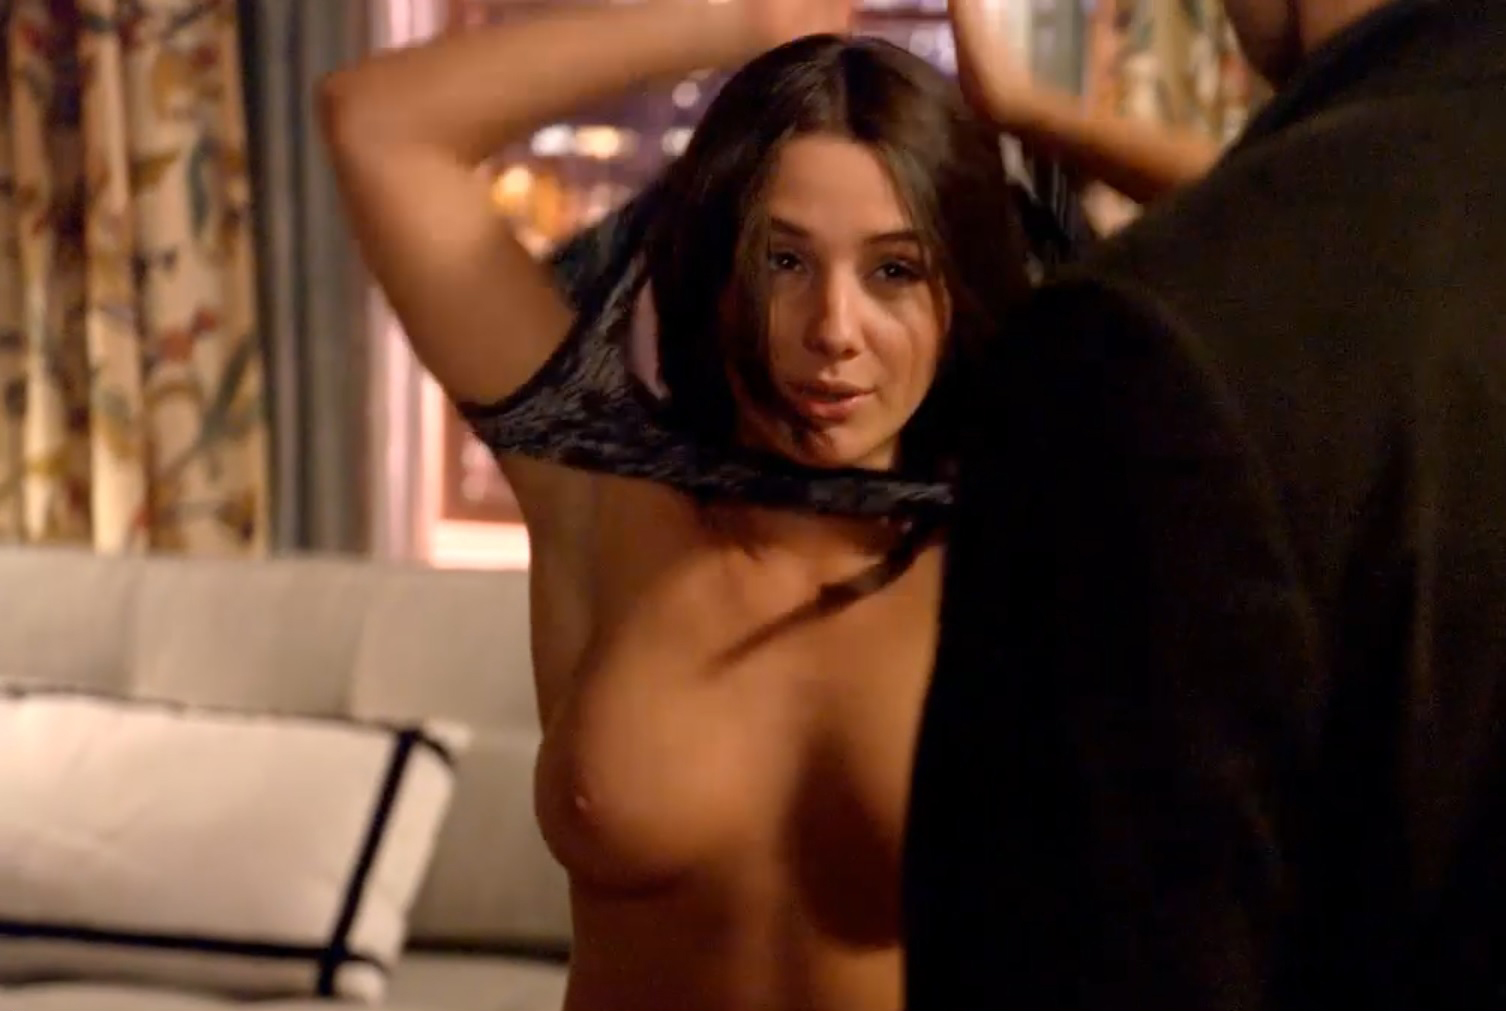 Addison timlin sex scene in the awkward moment 5